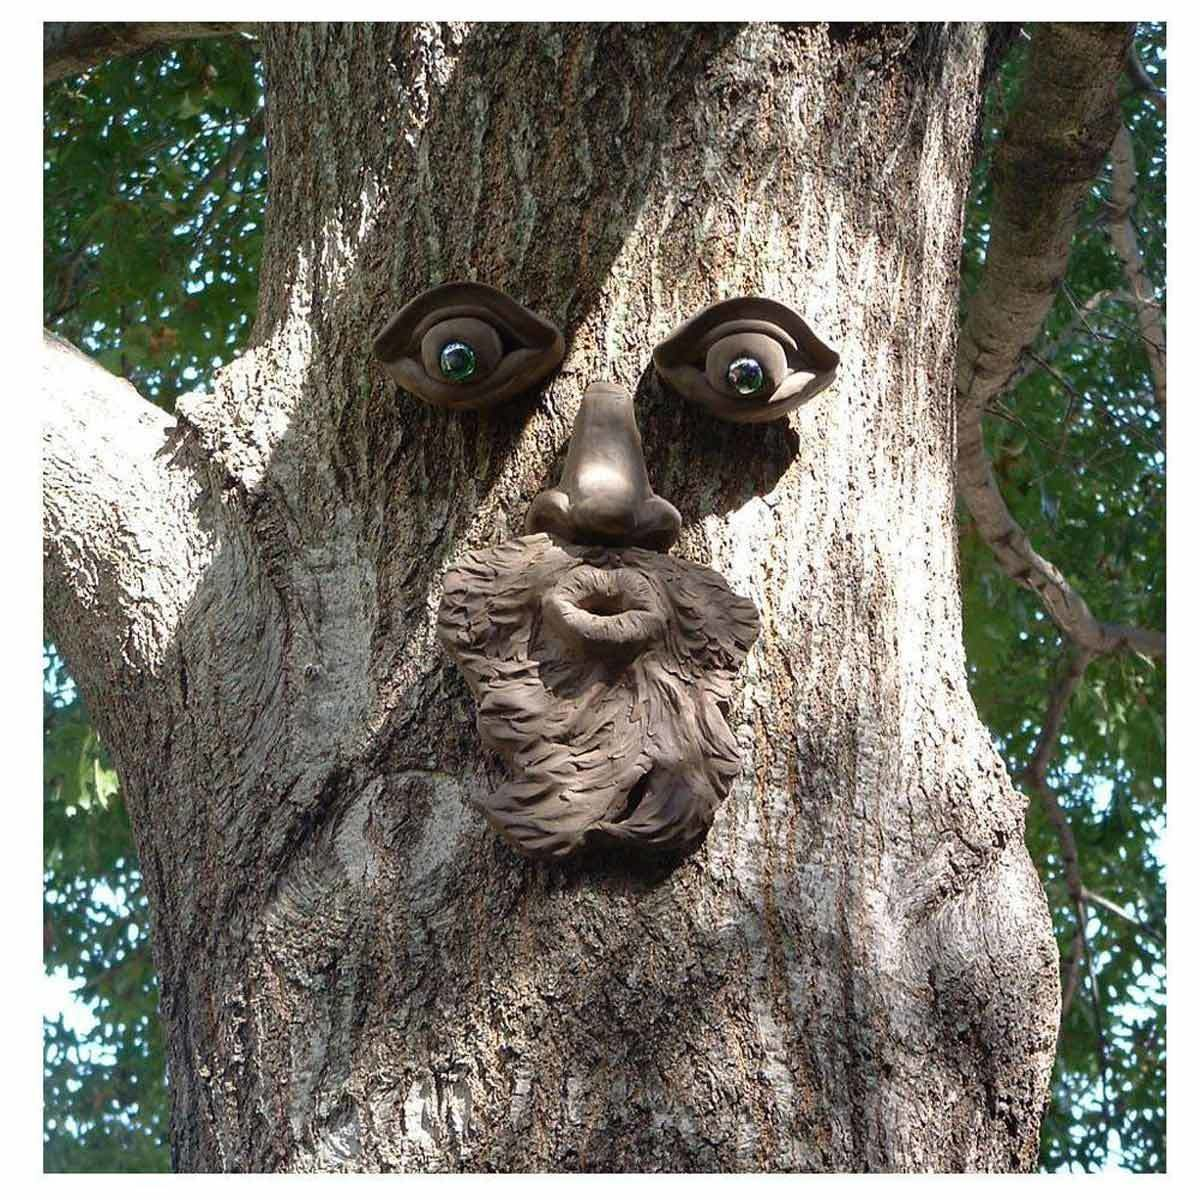 Creepy Tree People